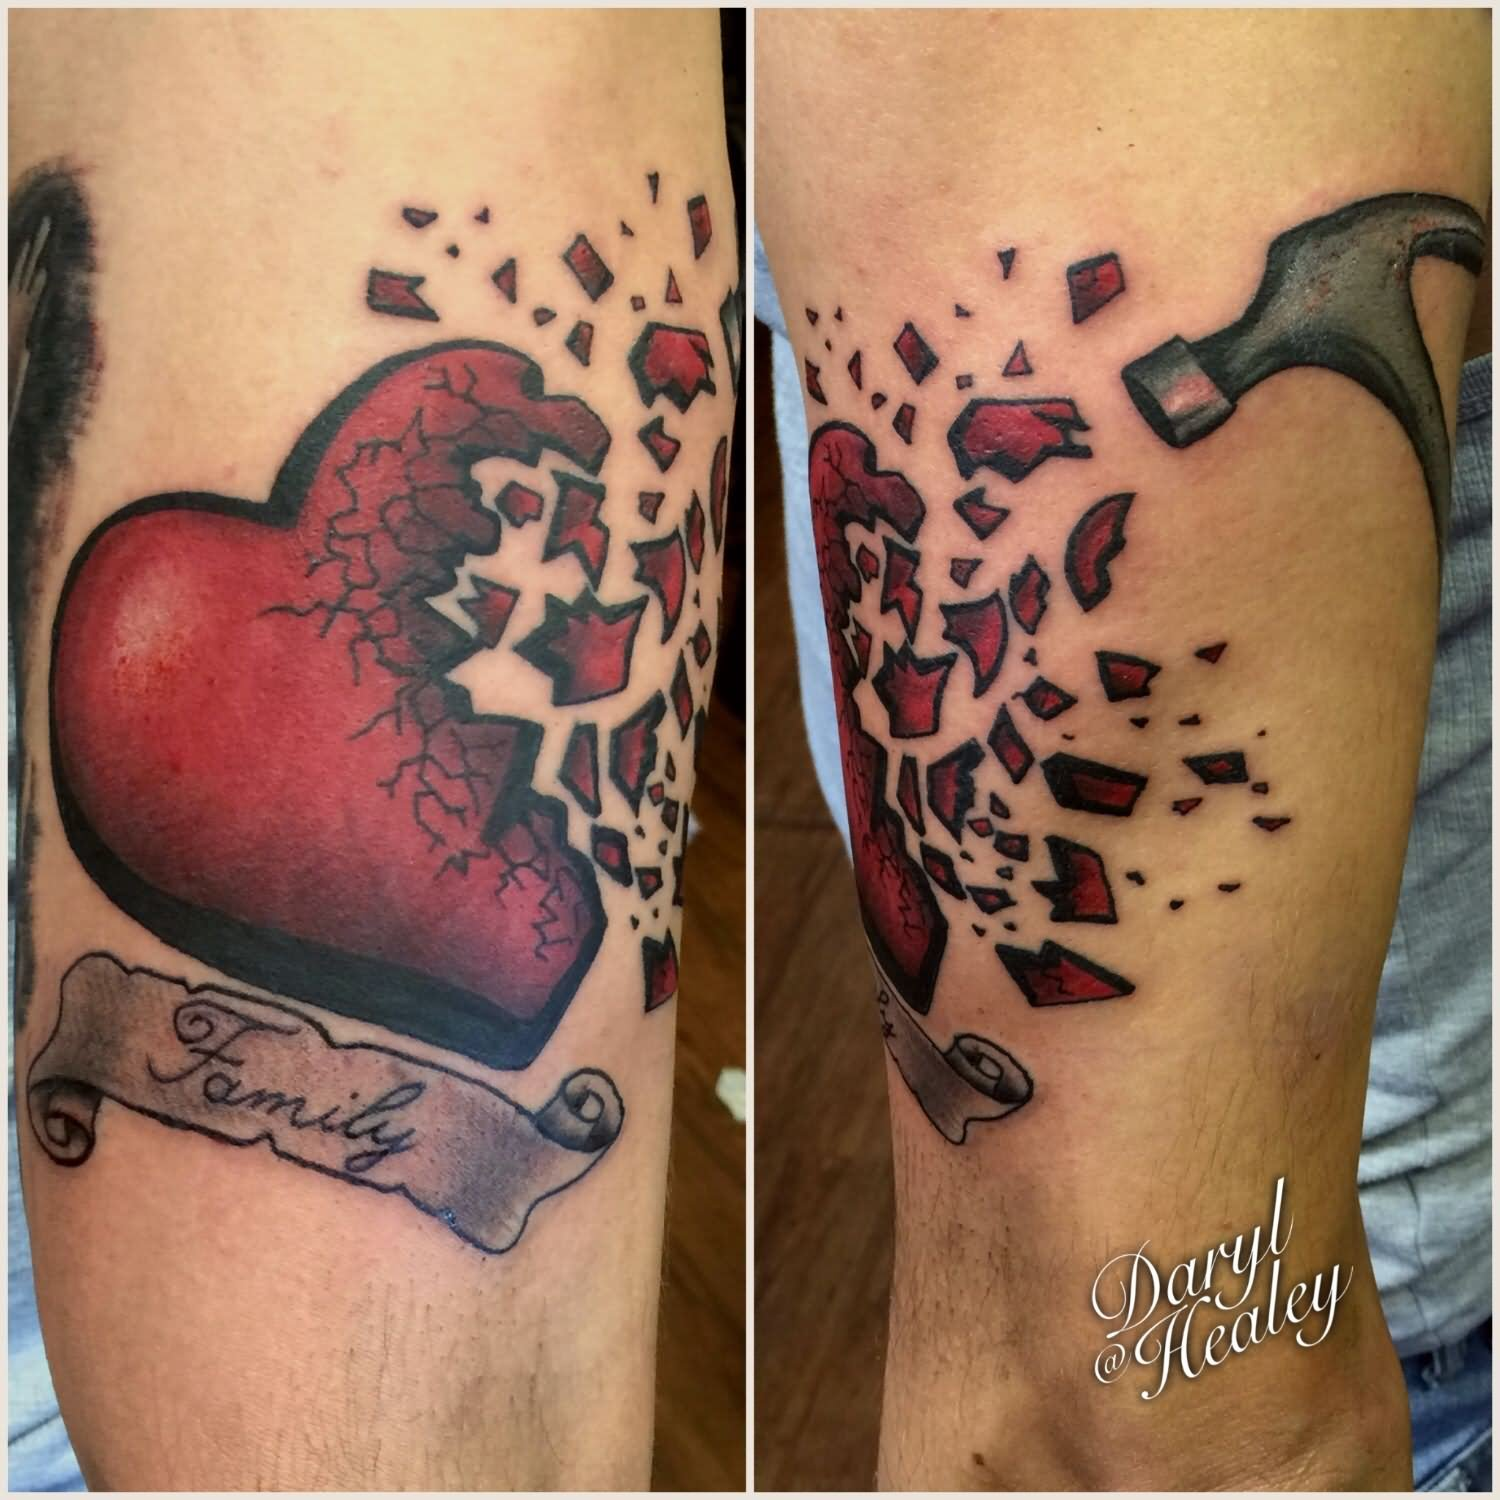 Red and grey shaded shattered pieces broken heart tattoo on arm